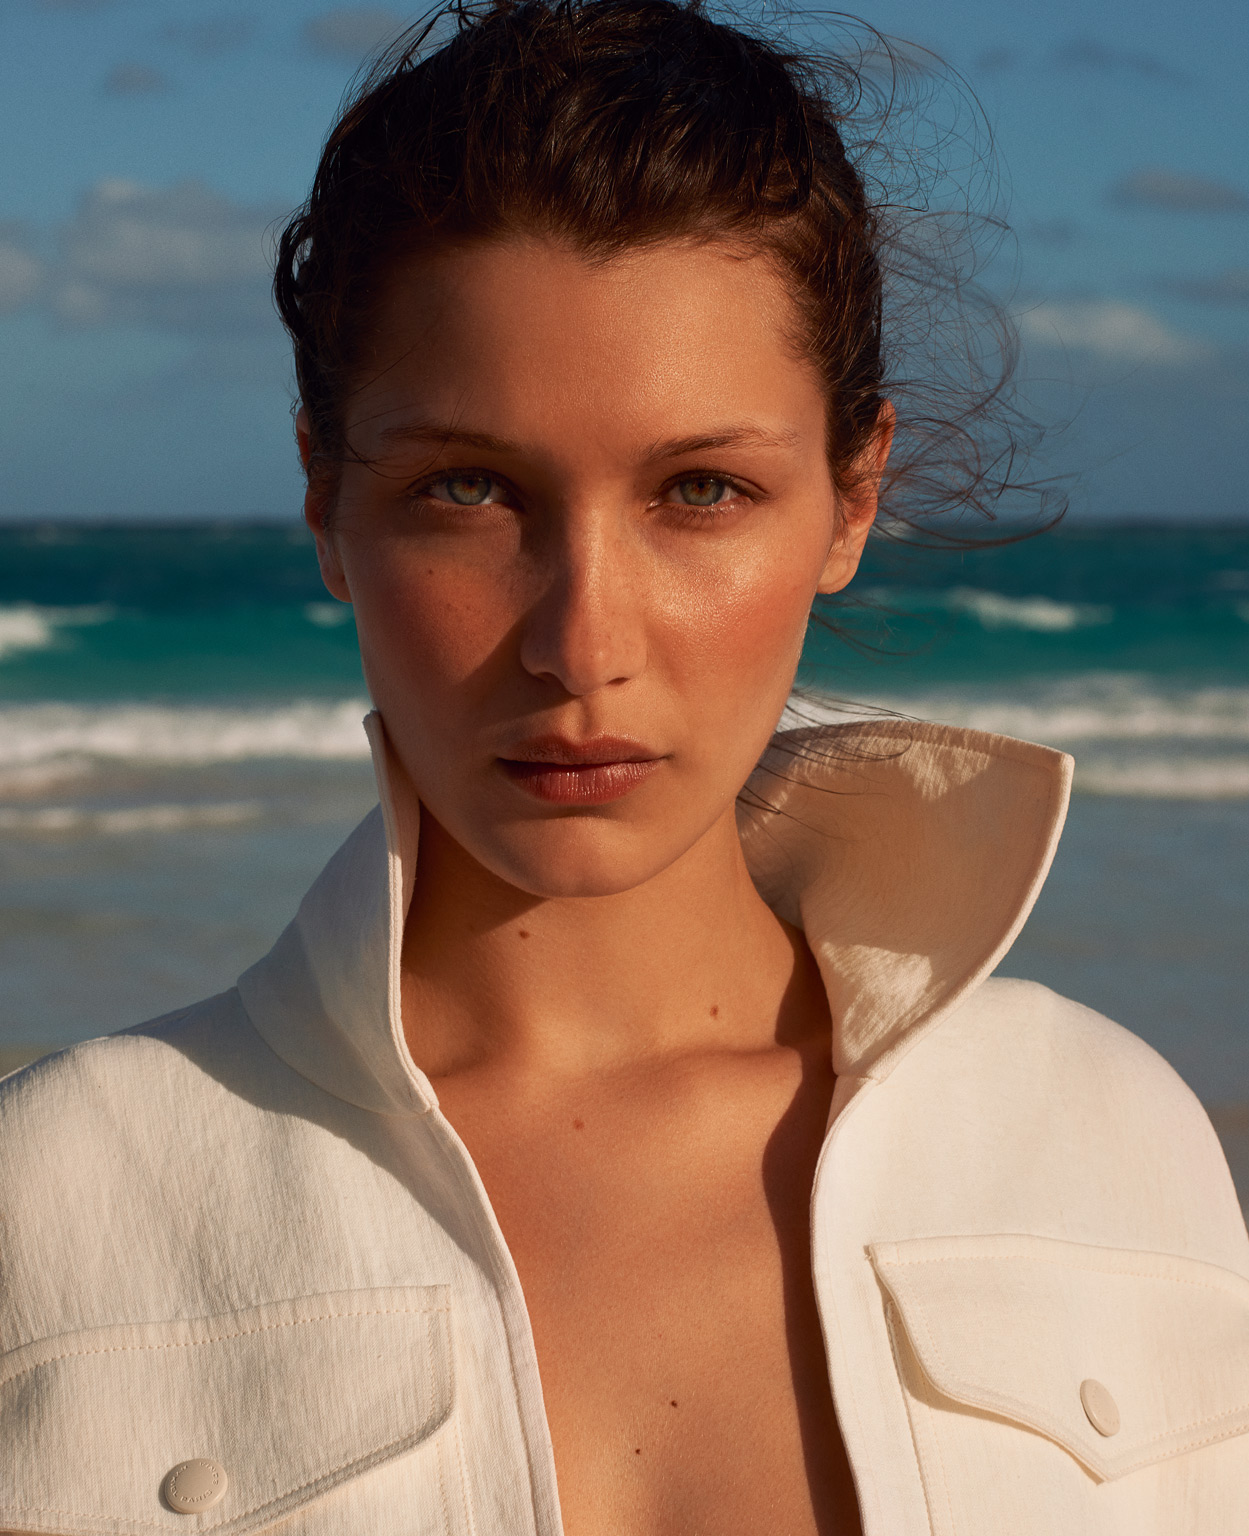 Smile Bella Hadid in Porter Magazine 20 Summer 2017 by Terry